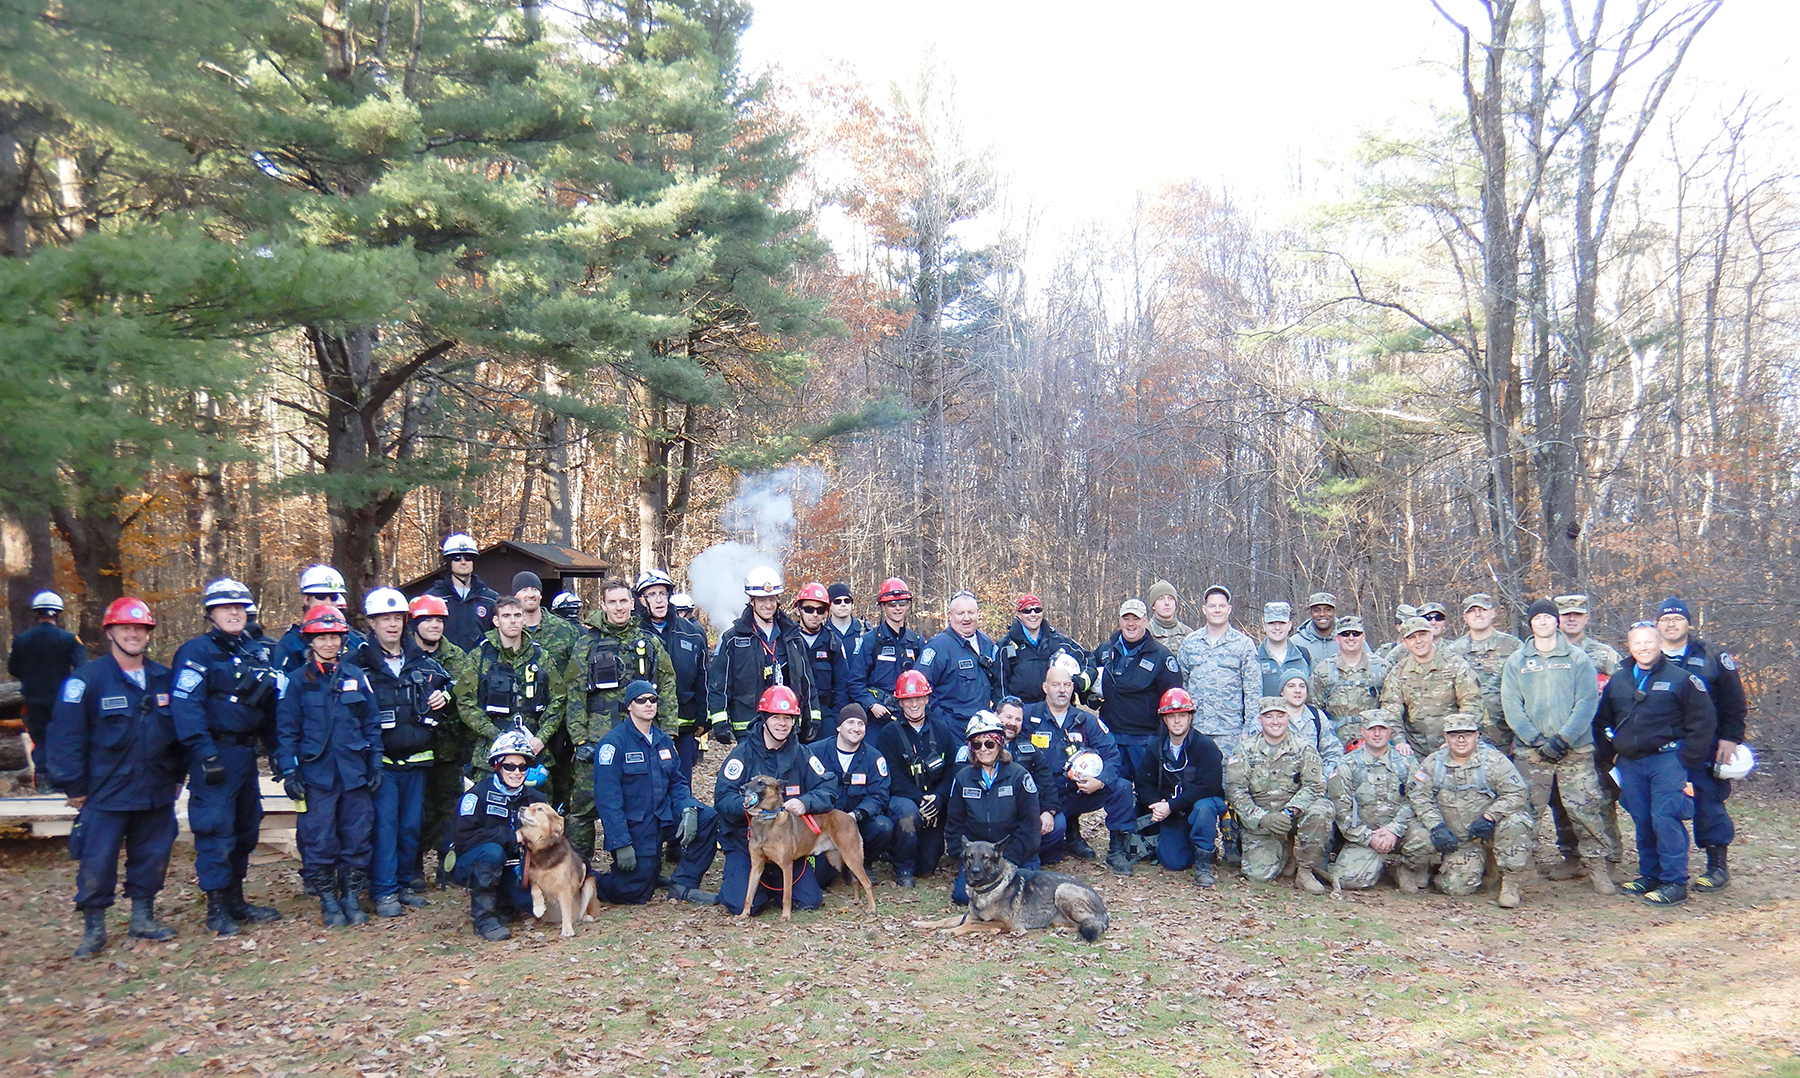 Many people—some wearing light or dark green disruptive pattern uniforms, or dark blue uniforms, some wearing red or white helmets—and three dogs gathered in a clearing in a wooded area, with white smoke rising in the background.